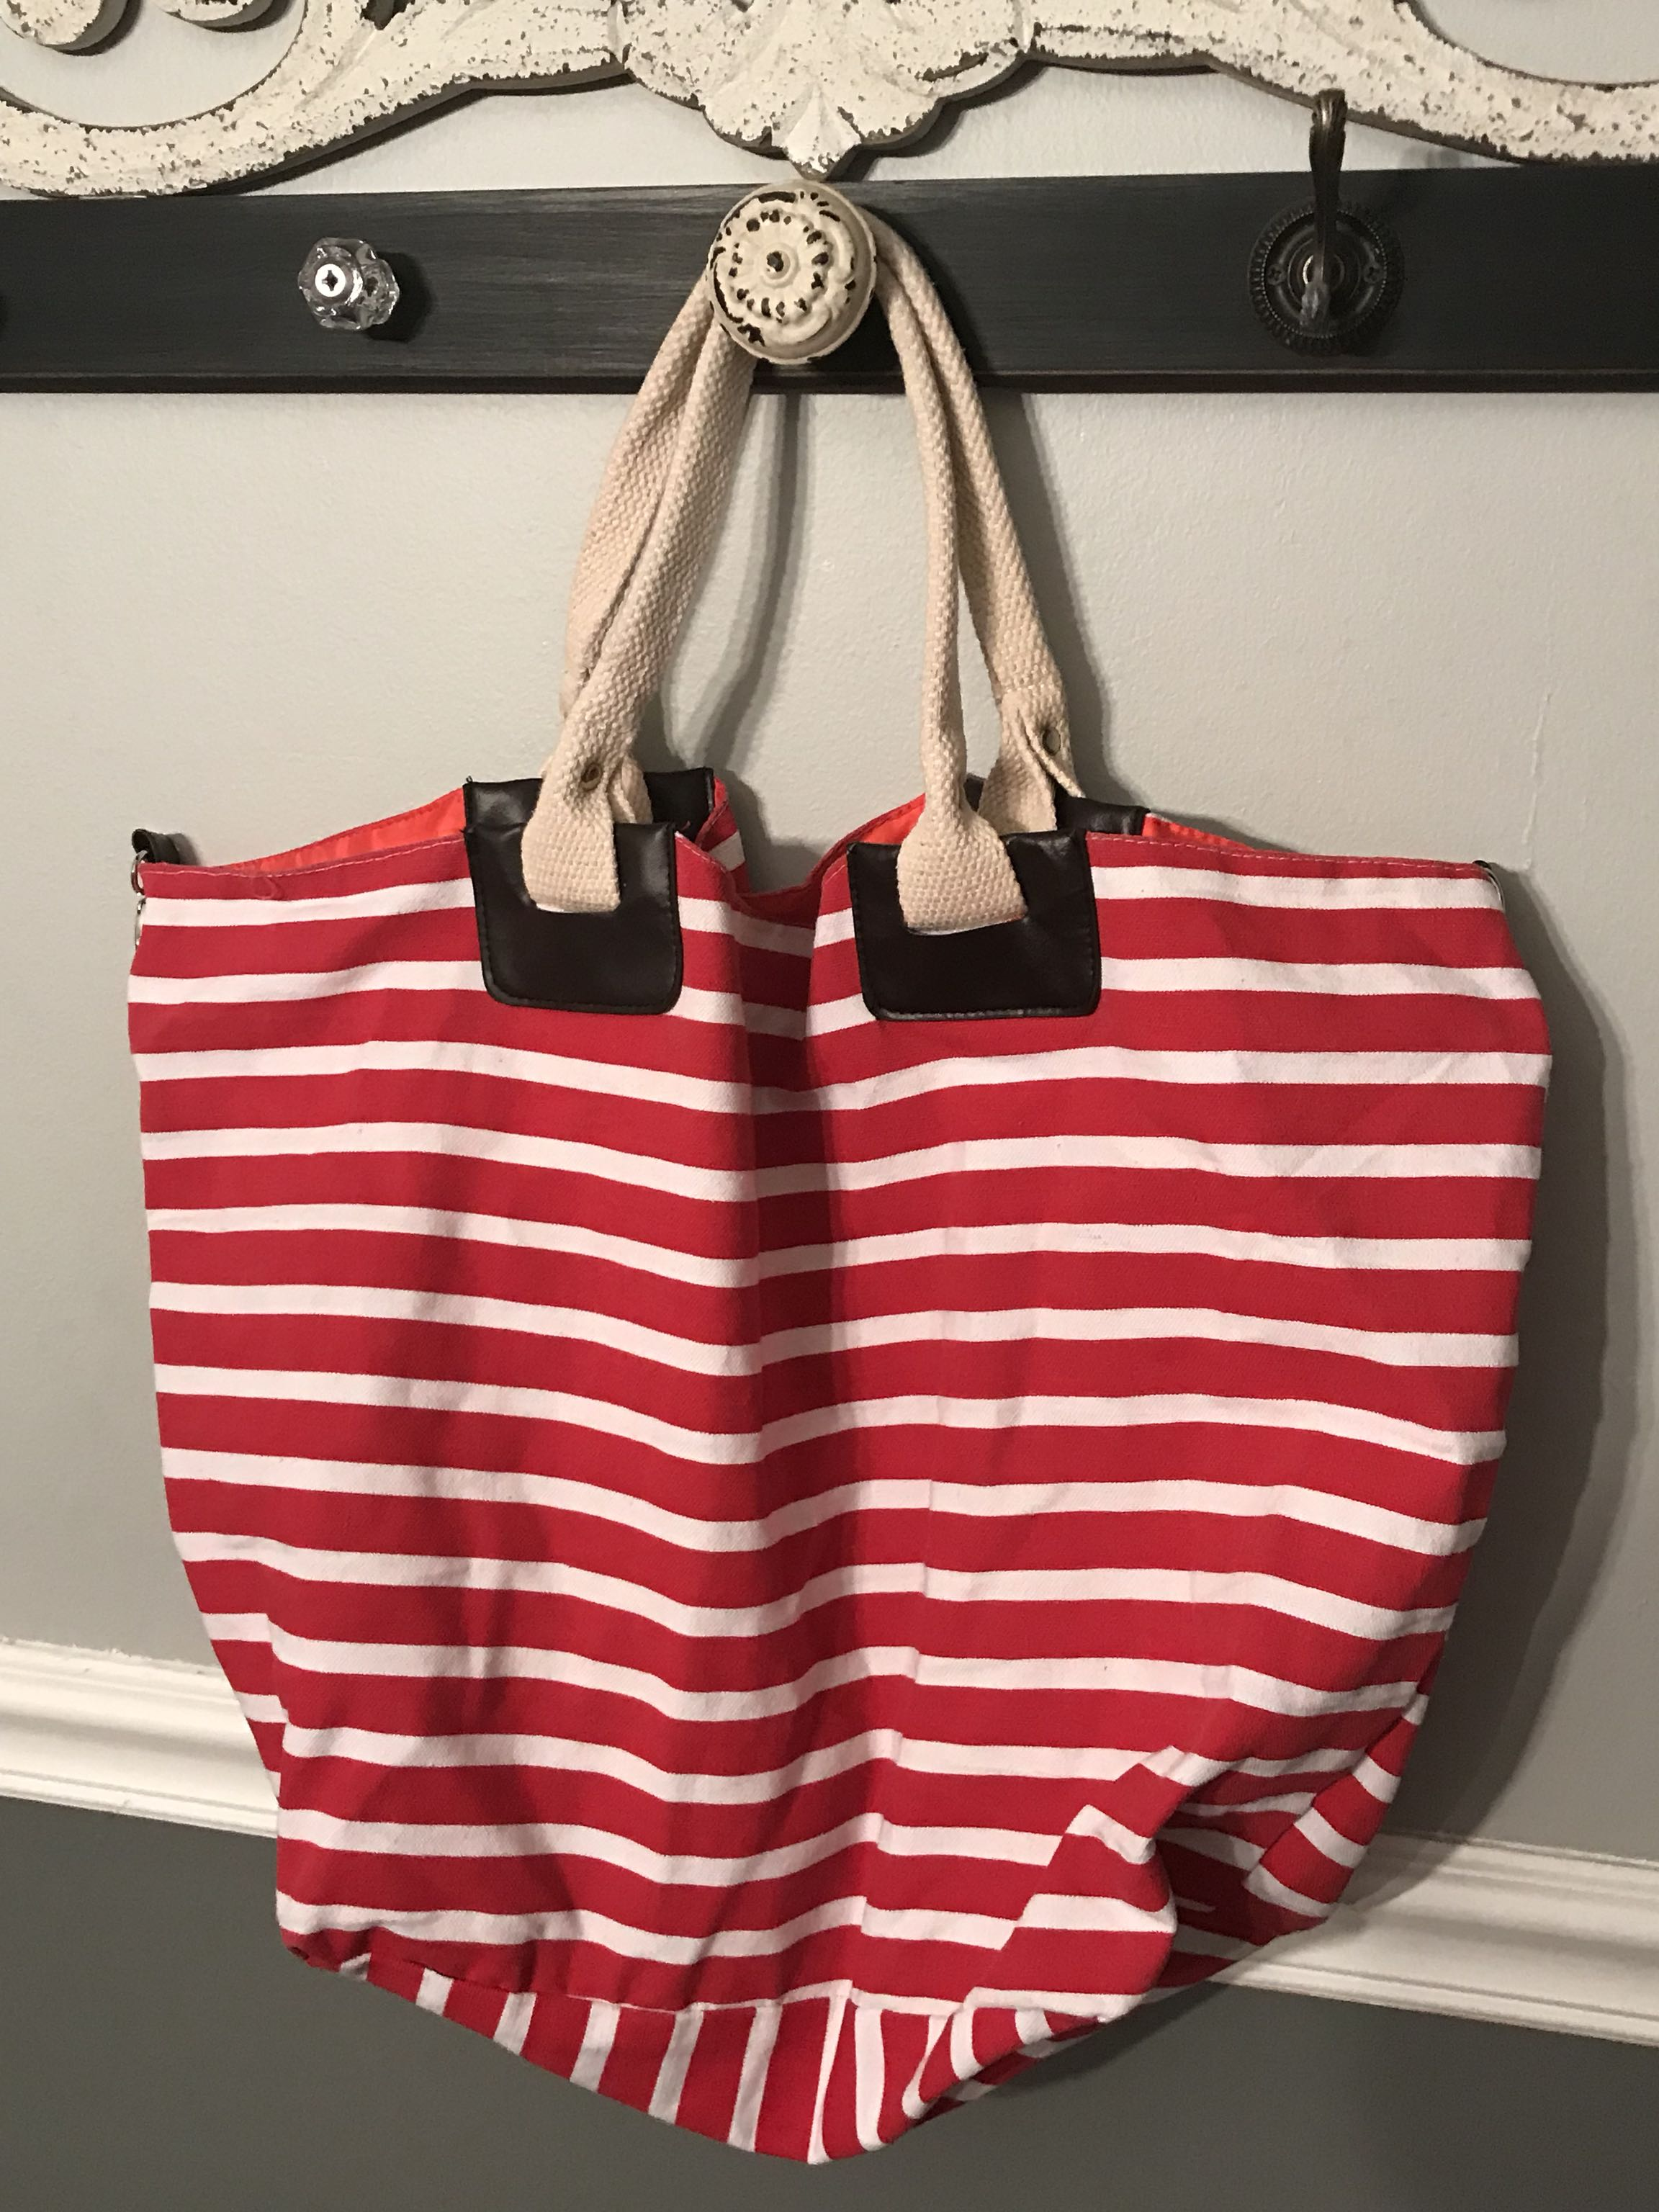 Red & white tote bag there are small pockets on the inside